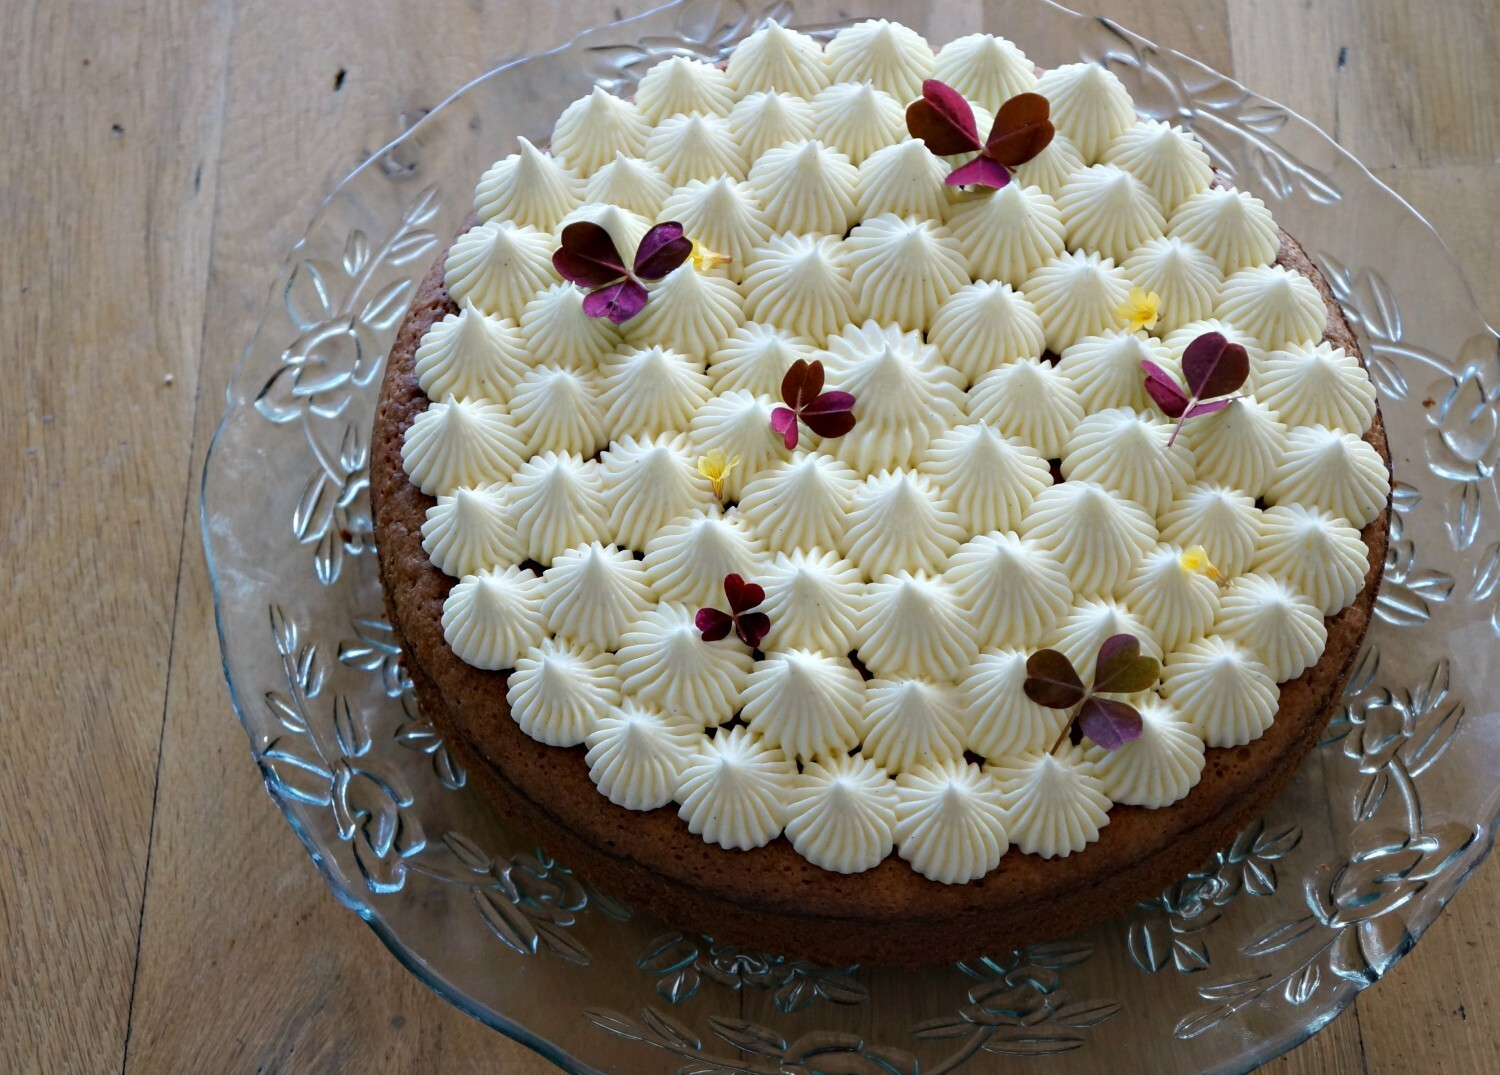 Carrot Cake with a hint of orange